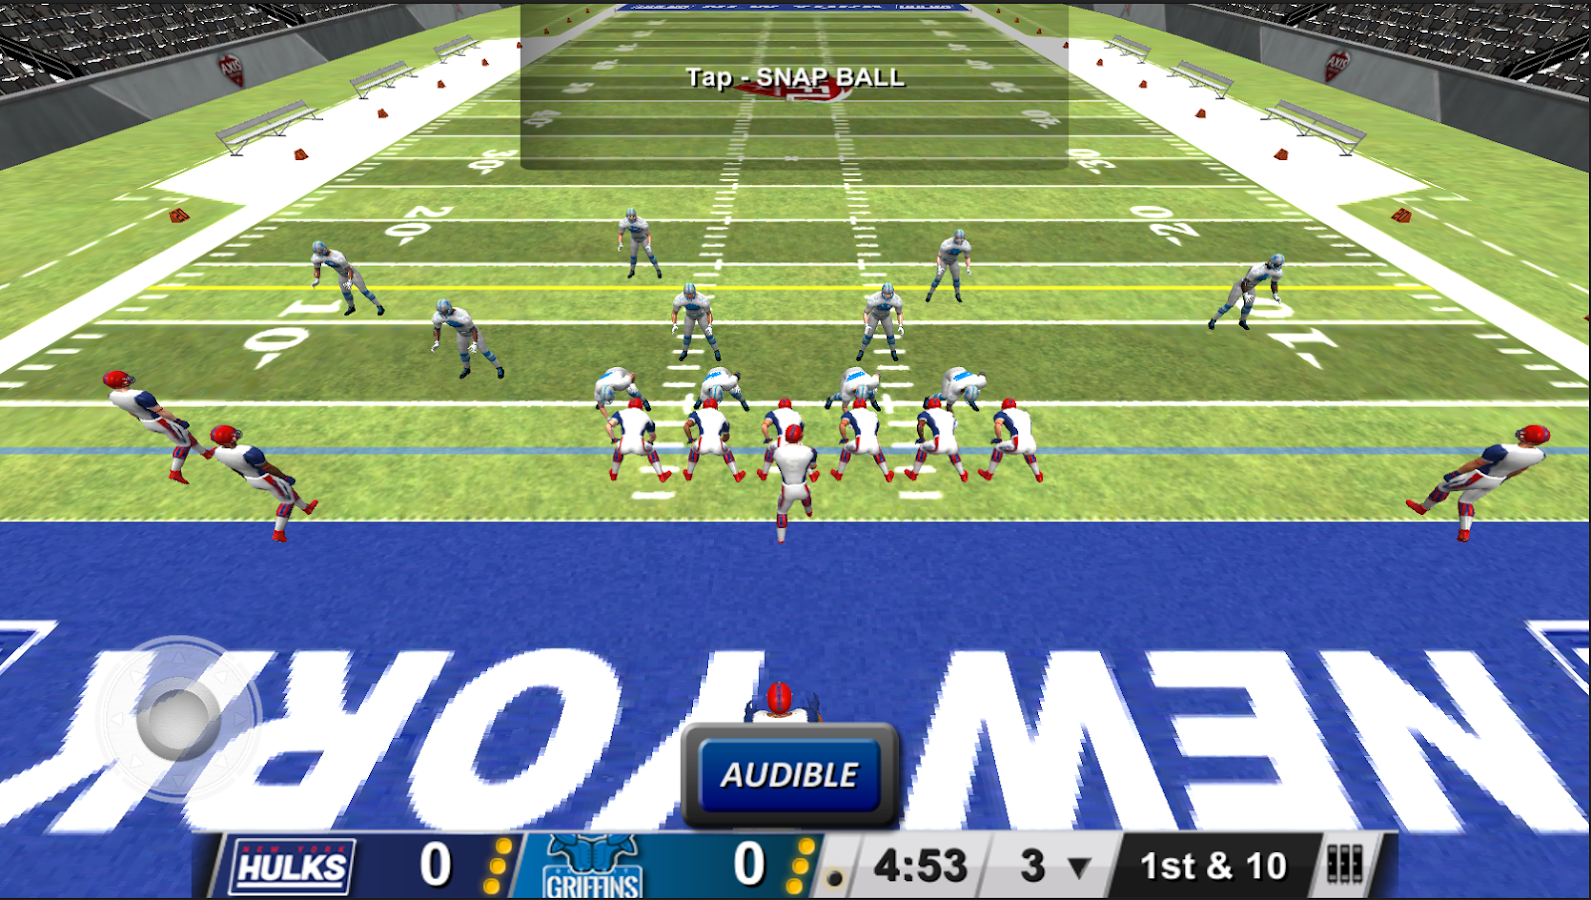 Axis football 2015 android apps on google play